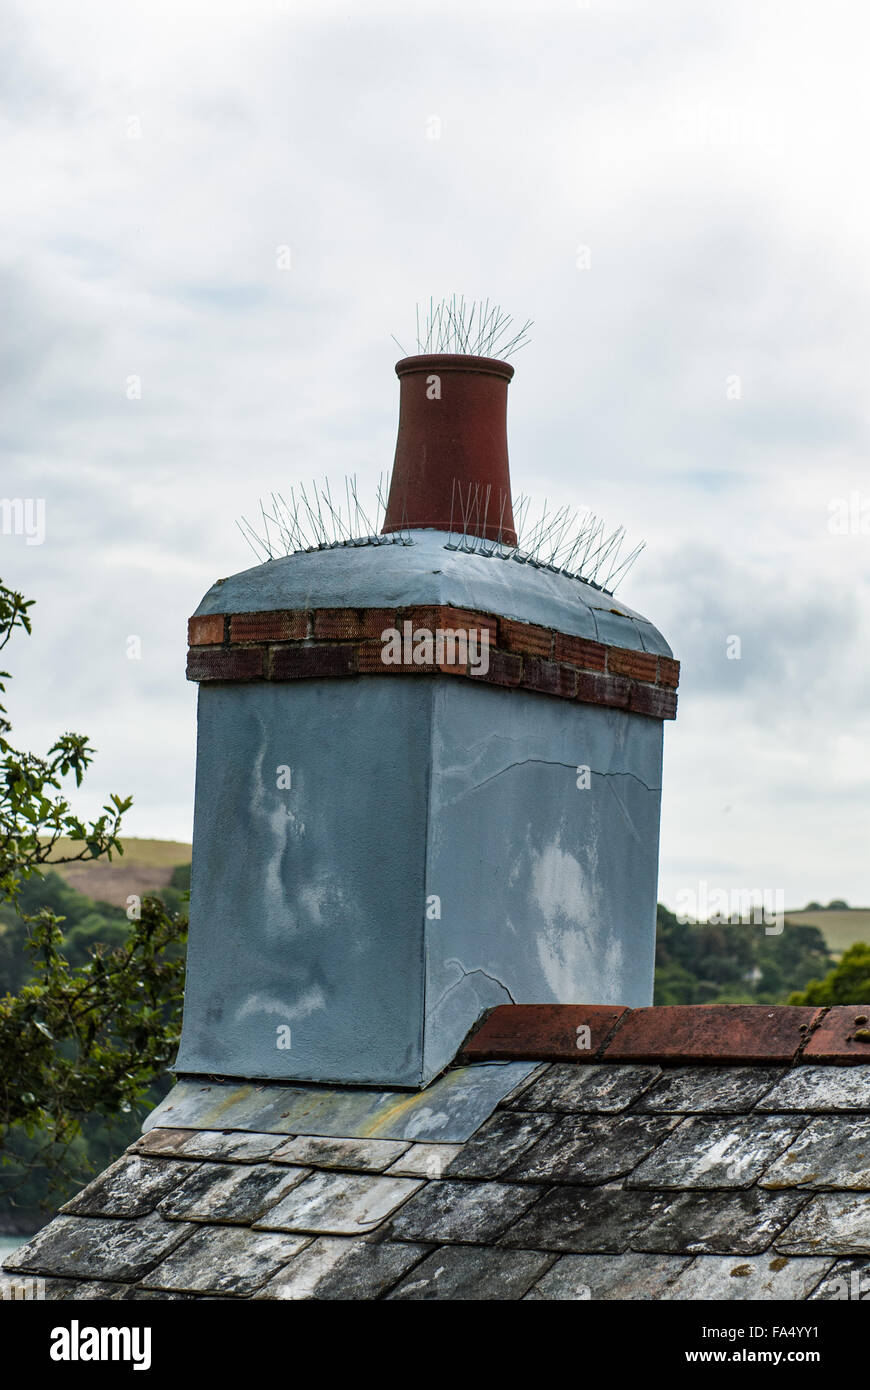 Chimney with spikes attached as a bird deterrent to stop them landing. - Stock Image